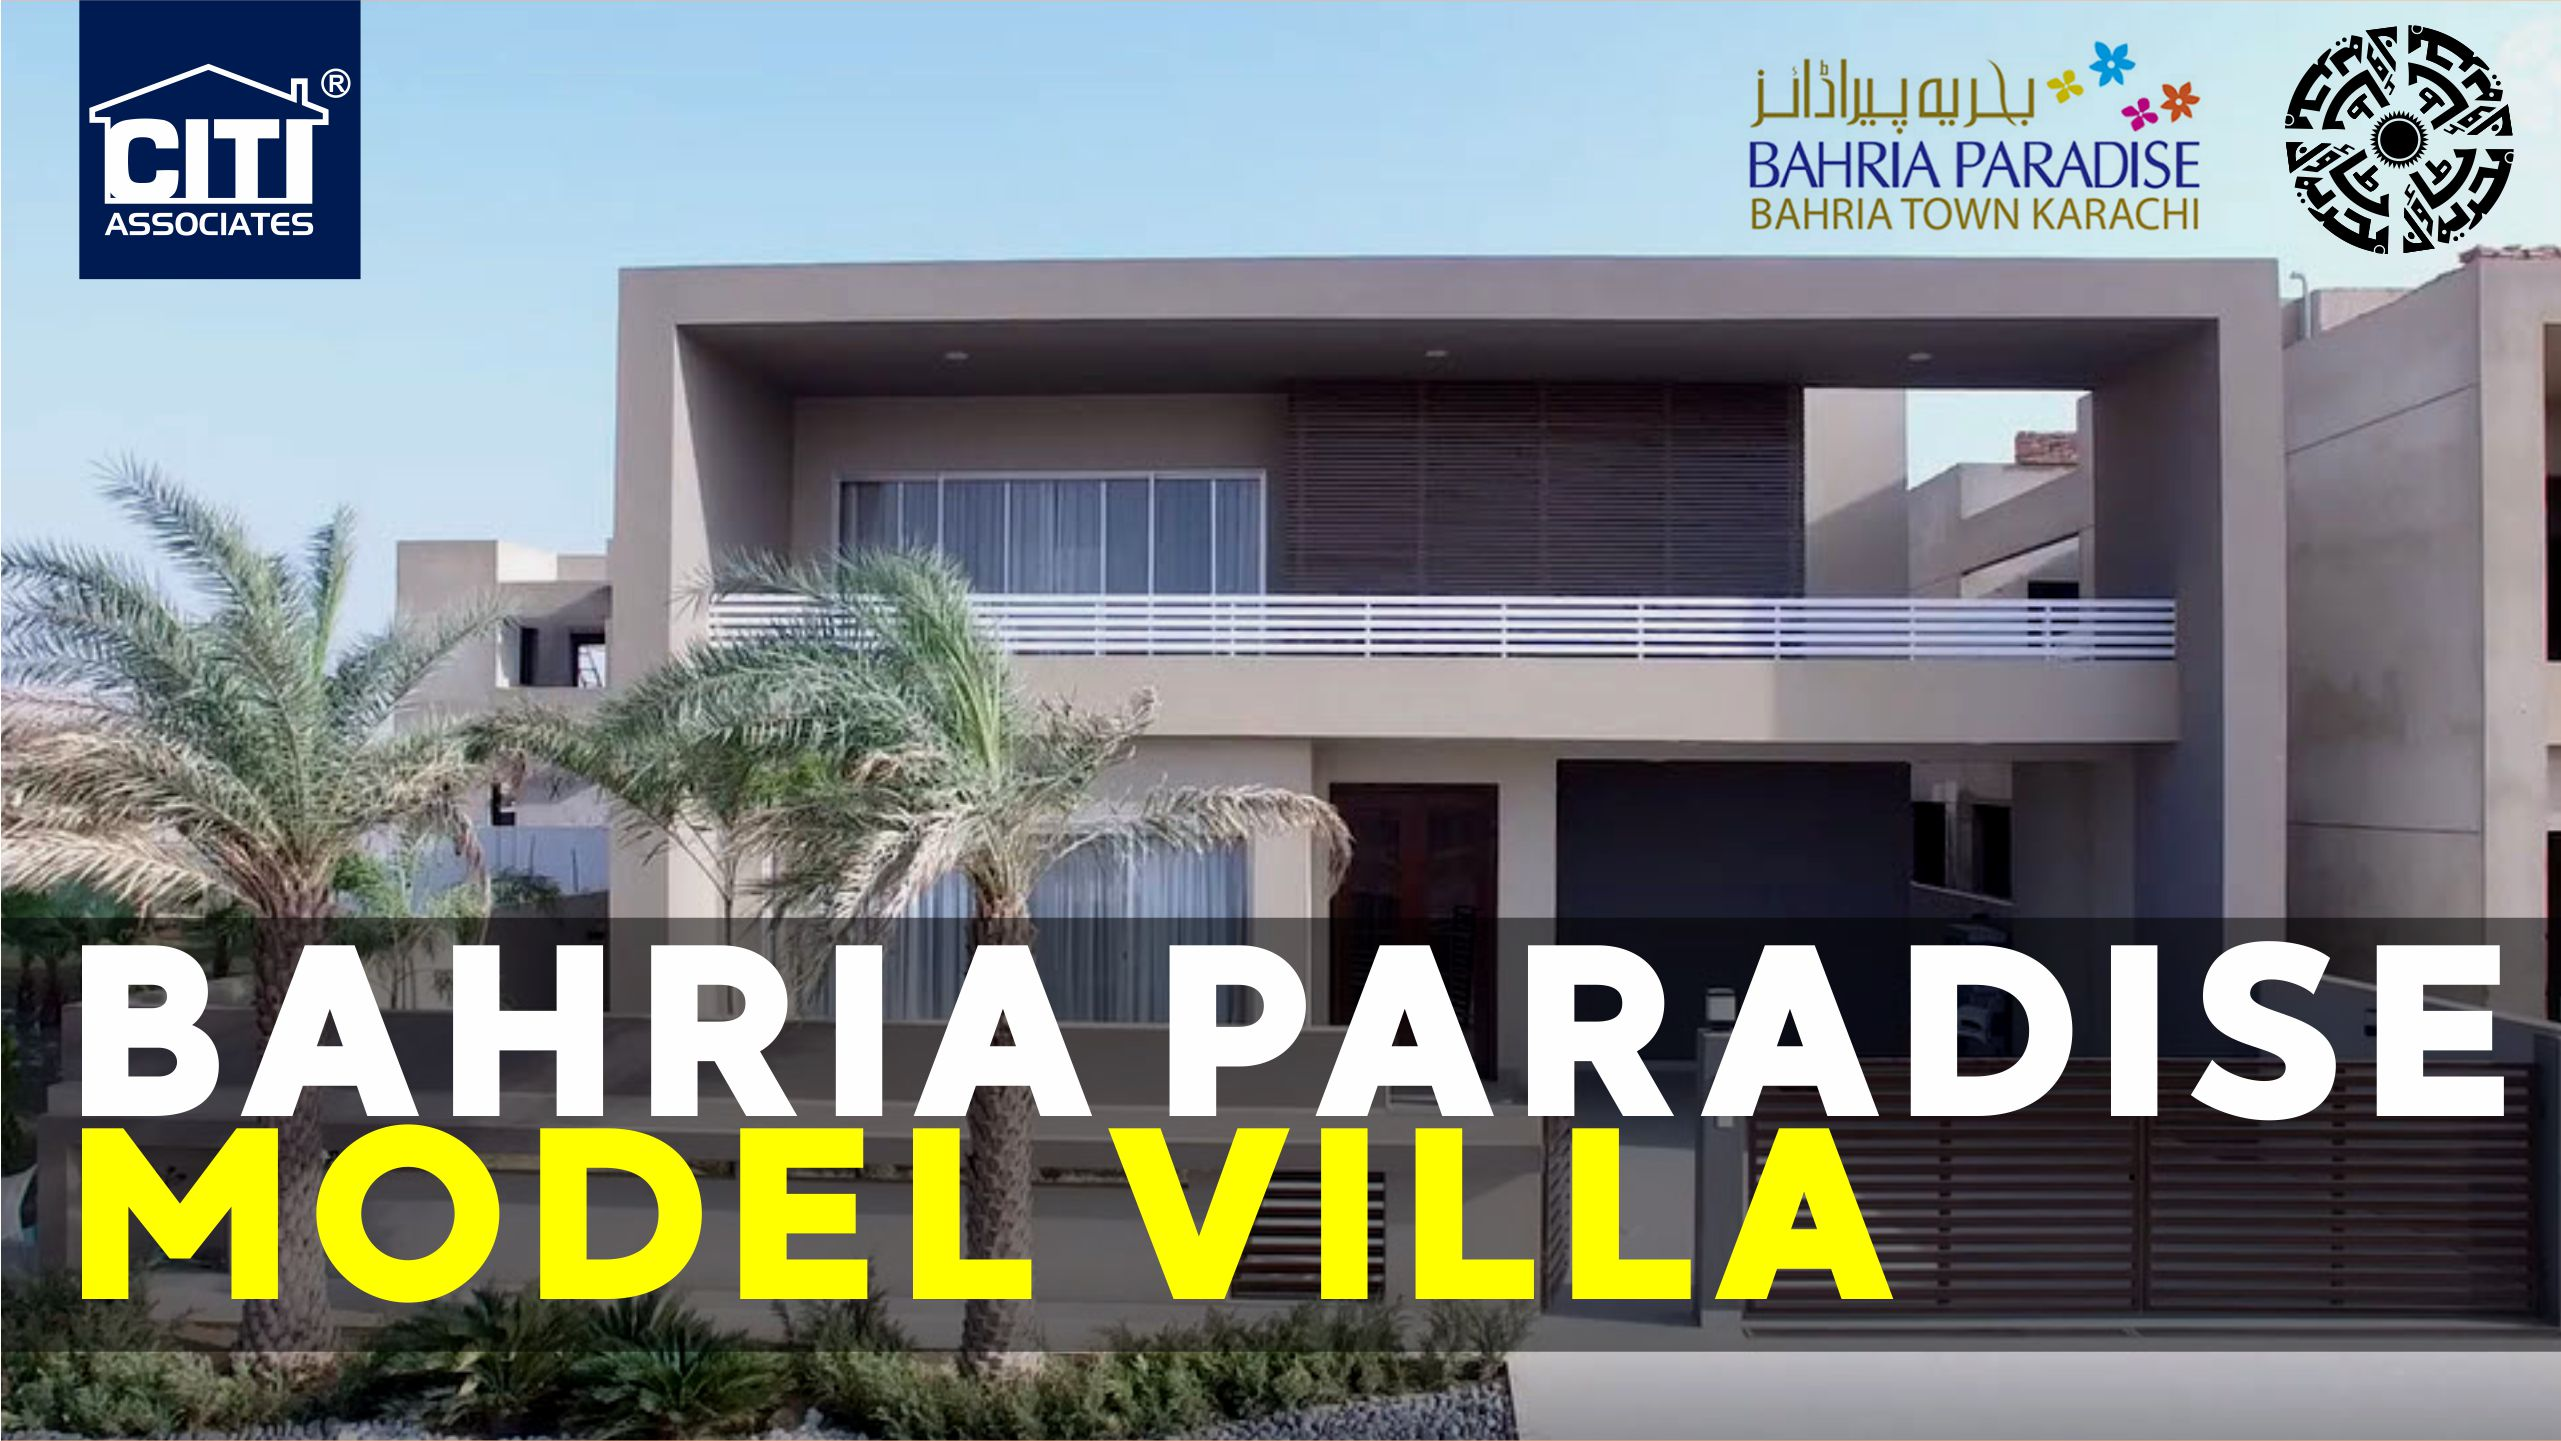 [Video] 500 Sq Yds Luxury Model Villa in Bahria Paradise Karachi